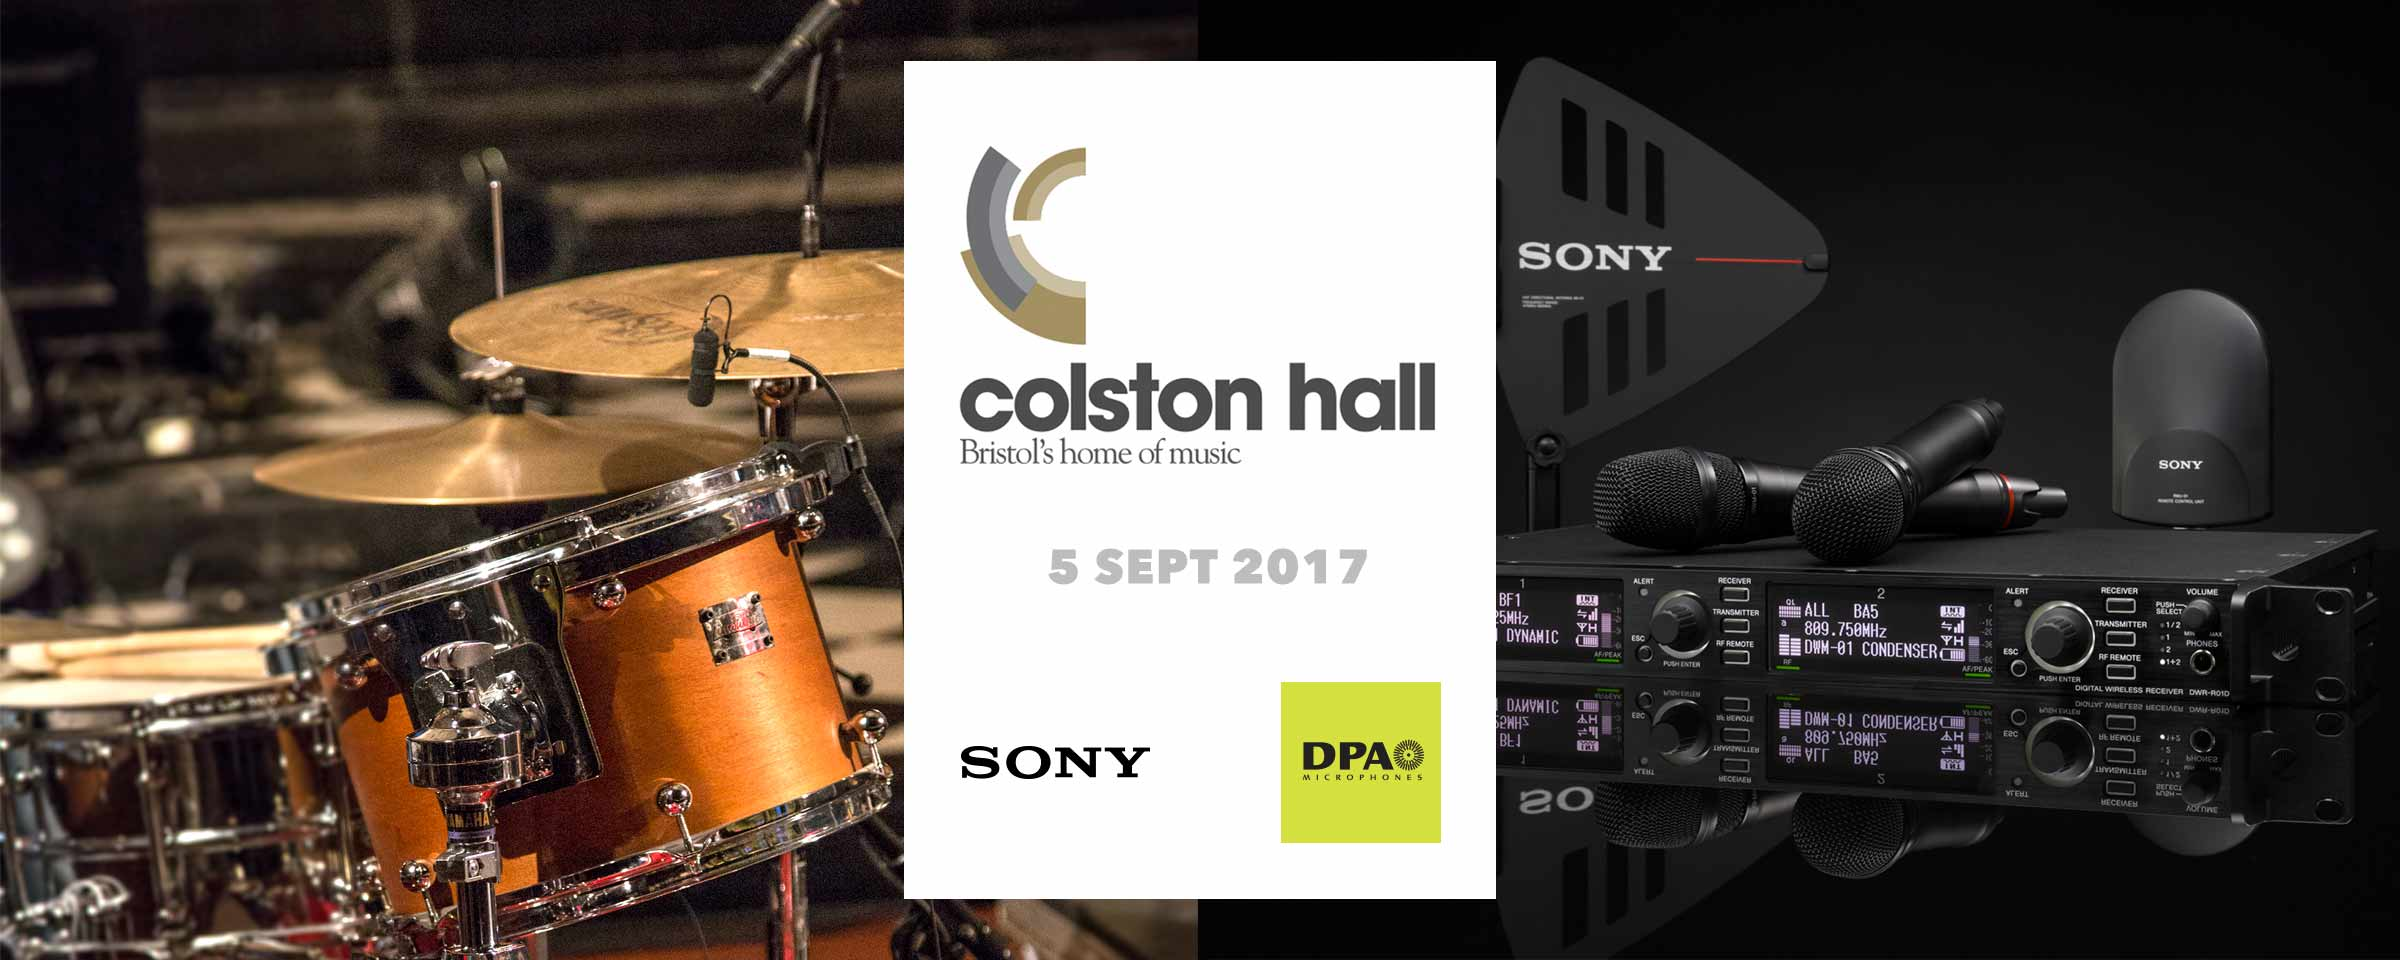 Colston Hall DPA Sony Workshop September 2017